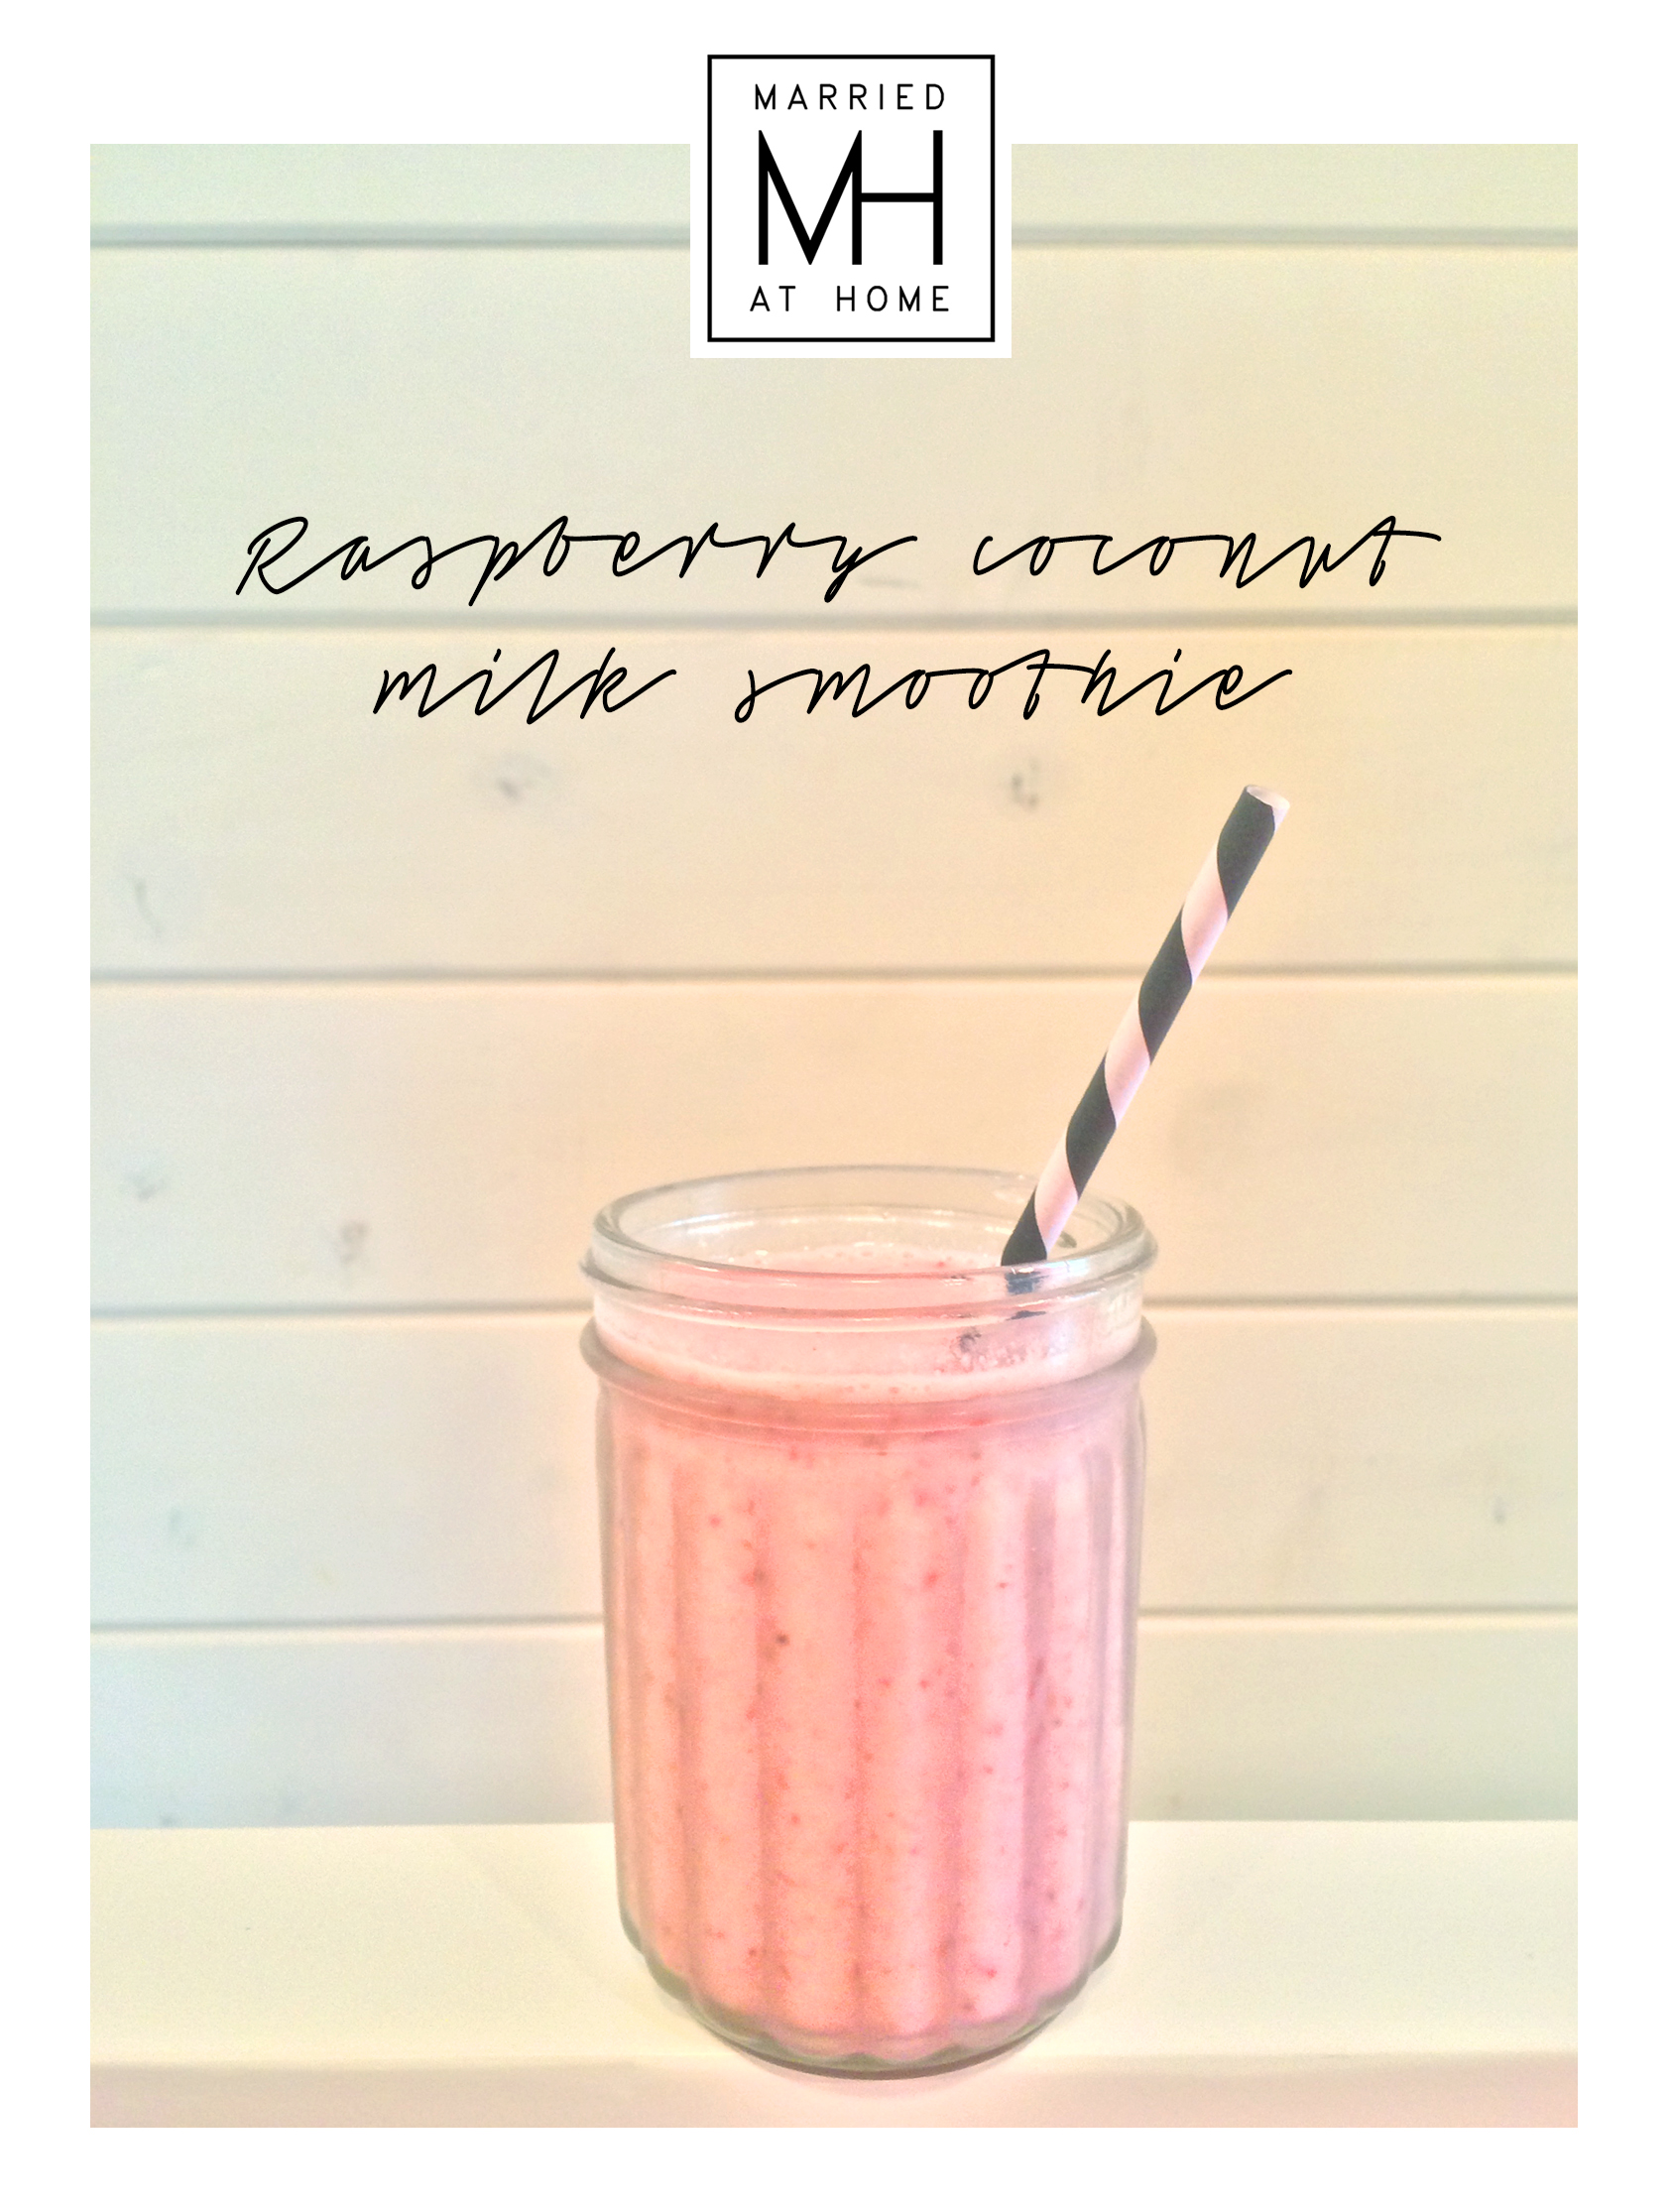 Raspberry Coconut Milk Smoothie   Married At Home